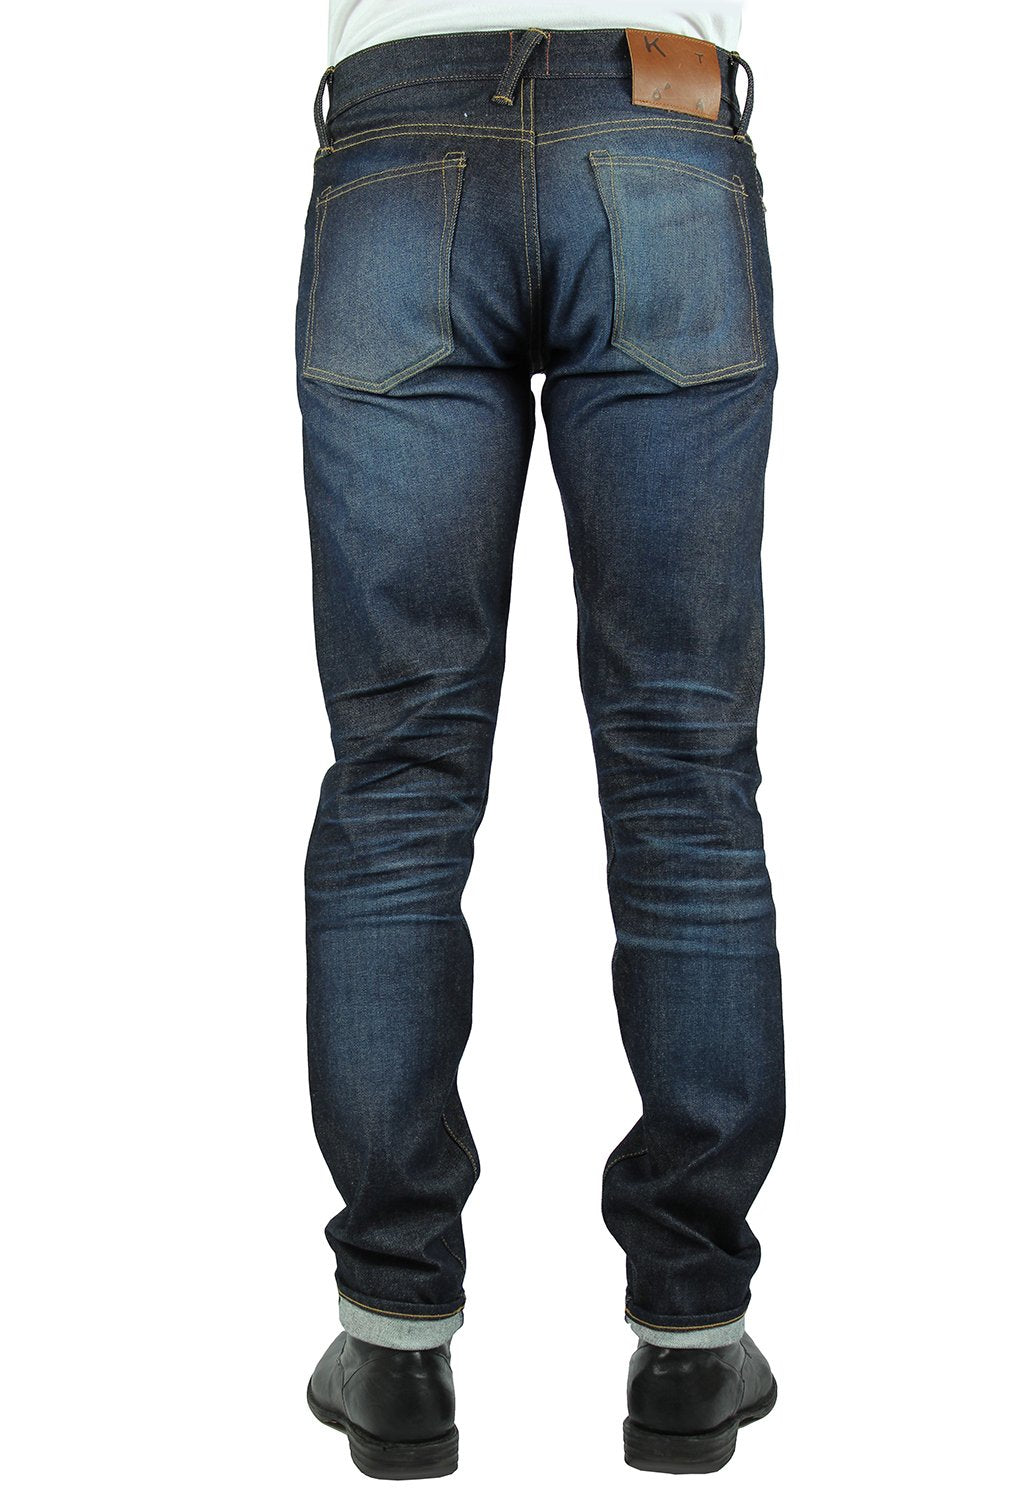 """THE PEN"" SLIM - LASER 10.5OZ 4-WAY STRETCH SELVEDGE JEANS"